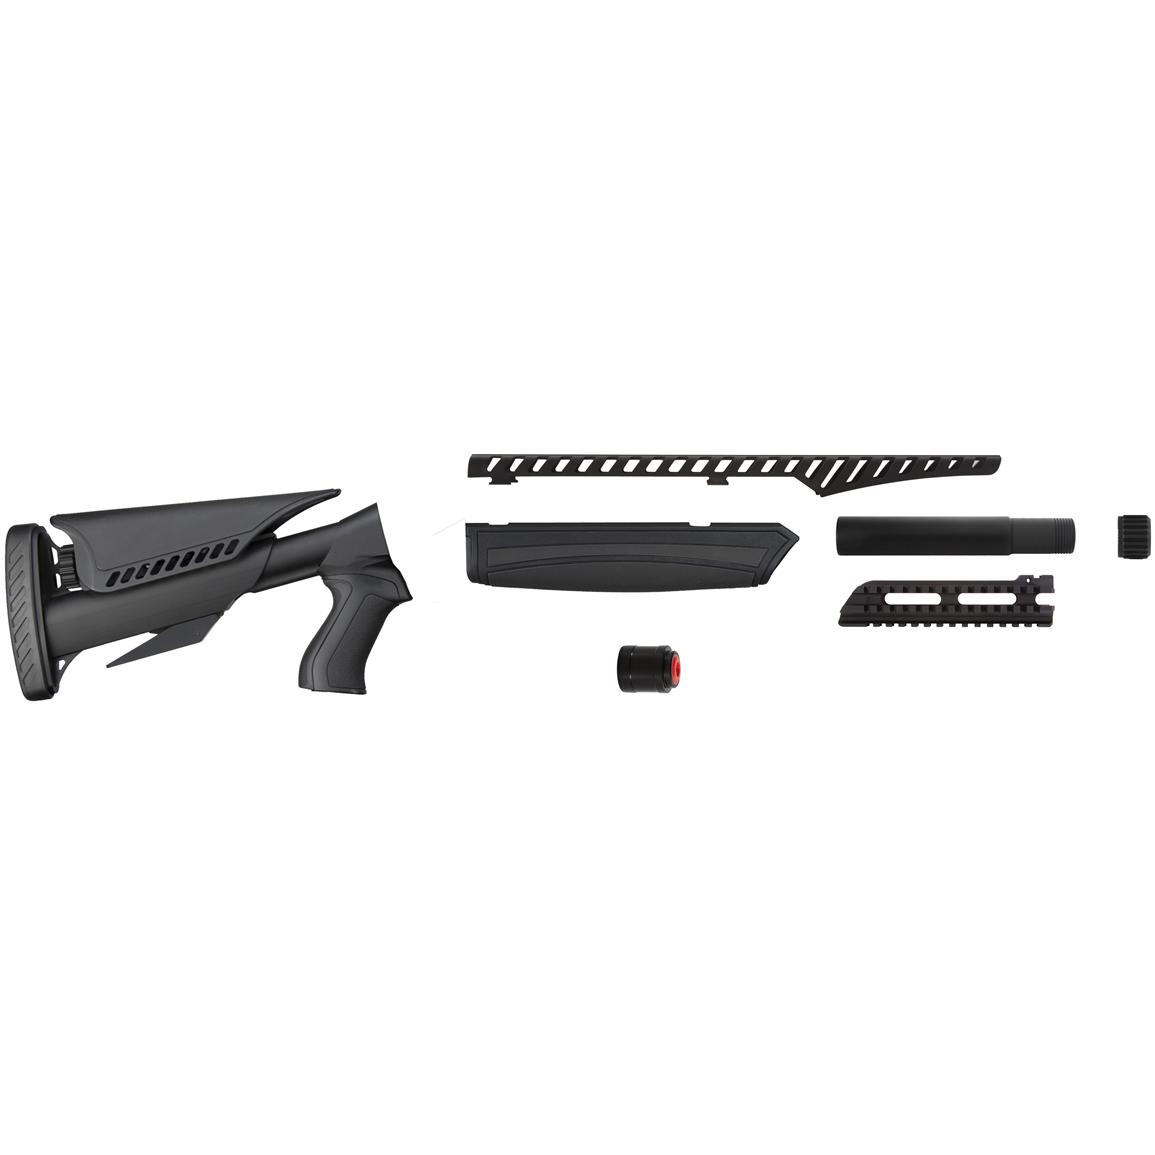 Benelli® M4 Raven Deluxe Stock and Forend Package